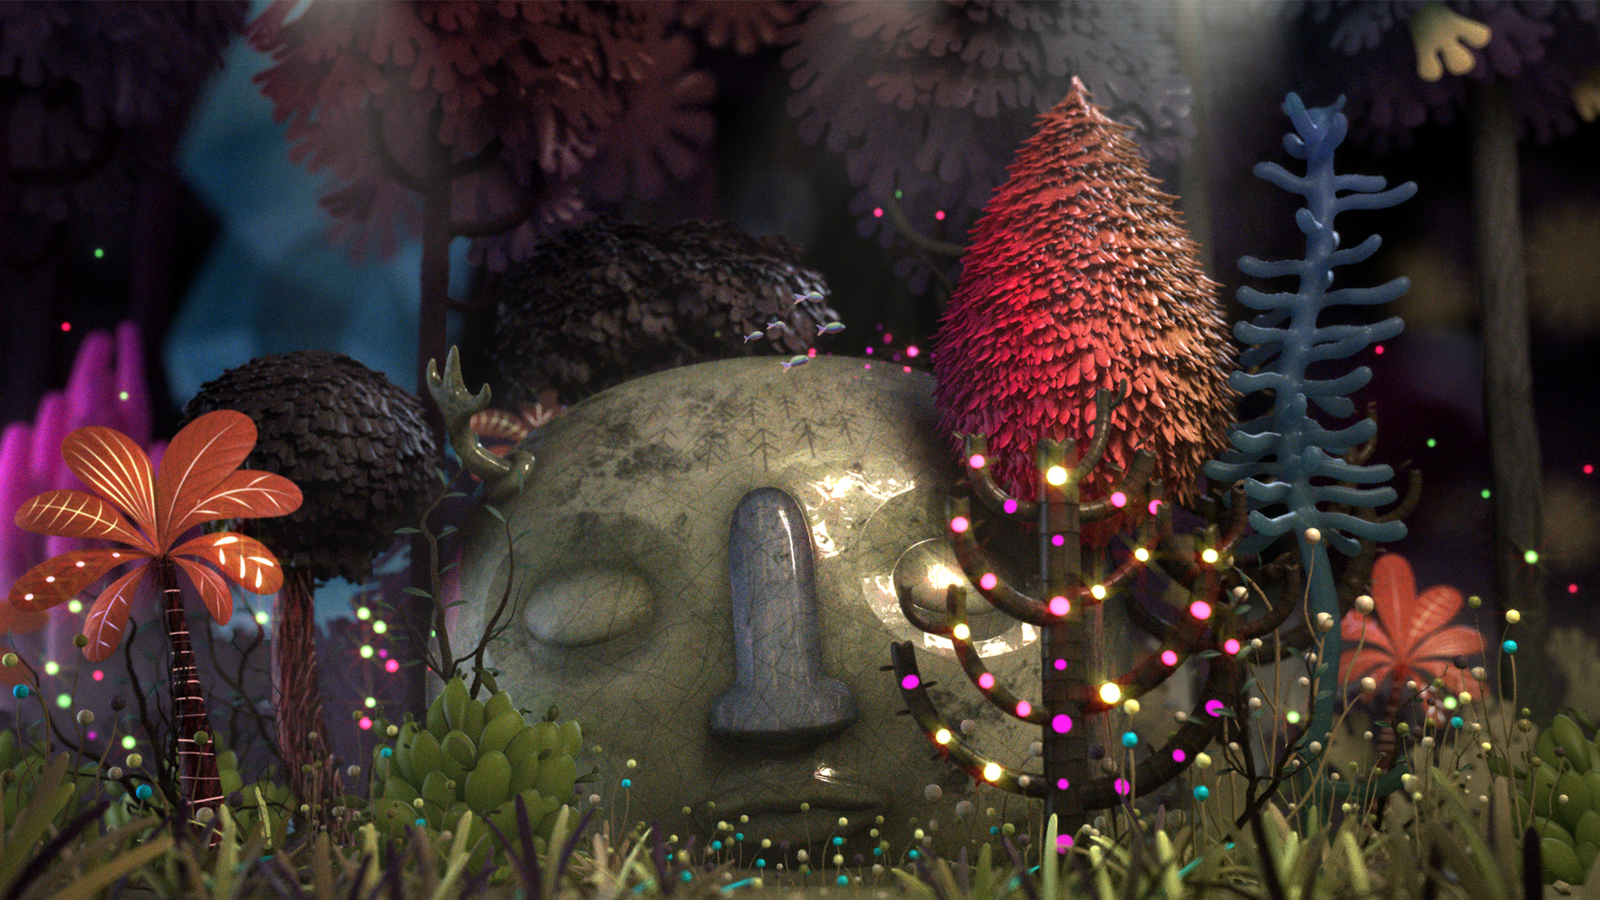 Render of still from The glorious remains of Banapal The Third animation, showing pot head surrounded by foliage under the sea